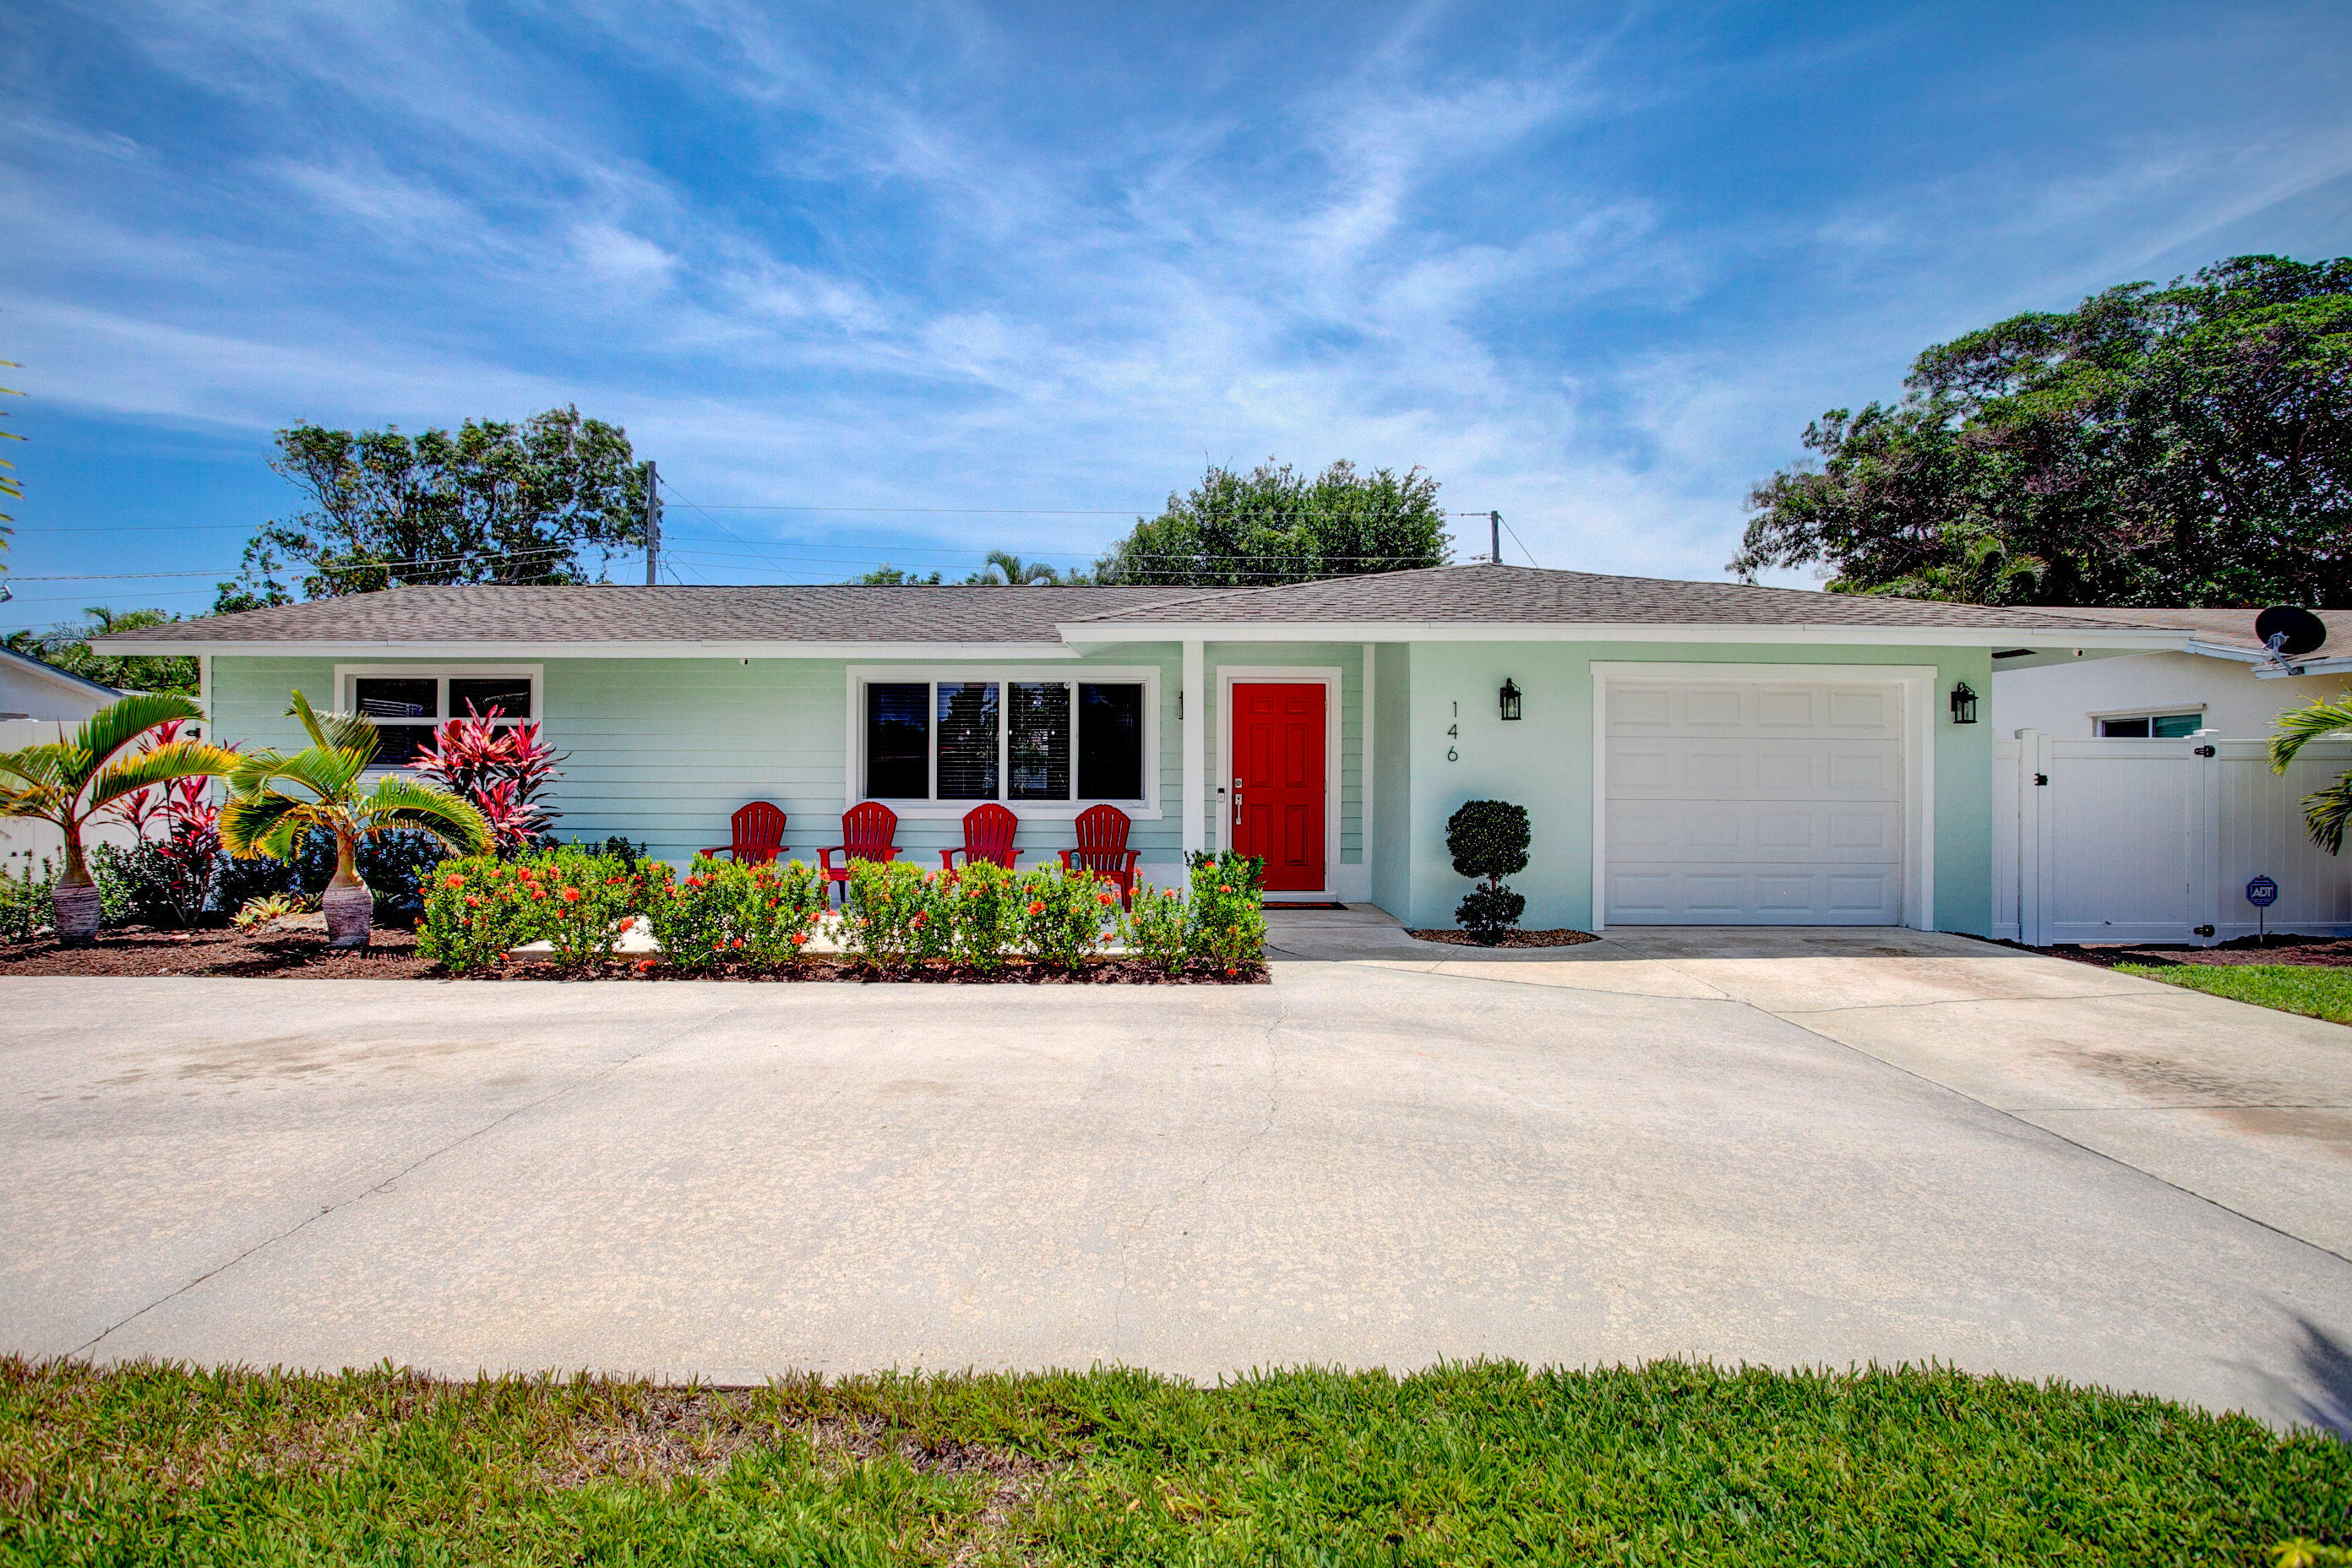 Location, Location, Location! This Beautiful Single Family Home located in the heart of desirable East Boynton Beach has been fully renovated both inside and out!!  The home features a split floorplan which includes 3 bedrooms 2 baths and a 1 car garage. Beautifully Landscaped with a new sprinkler system that is WiFi Automatic!!  The Large back yard is fully fenced in with new vinyl fencing.  There are two nice size patios one in the front and one covered back patio with gorgeous ceilings made from Pecky Cyprus and new tile with plenty of room for your loving pets, barbequing and entertaining your guests.  The Spacious circular driveway has plenty of room to store your cars, boats or recreational toys.  The new Kitchen has a 36'' Wolf Gas Range with hood, custom cabinetry, granite counter tops, new backsplash, stainless steel appliances and pendant lighting. Both bathrooms have been newly renovated and feature new tile, shower, tub with rainfall shower heads marble and quartz countertops.  All natural gas appliances, including tank less water heater, dryer, range outdoor grill and stand by generator. Entire house has a water purification and water softener system, new AC system and ducts, electrical panel upgrade, recess lighting, new porcelain tile, Impact windows and doors including Garage door and sliding glass doors, new stand-by Generac Generator which powers entire house.  Exterior has been completely re-stuccoed and repainted.  House has natural gas and NO HOA!!!!  Don't miss out, A MUST SEE!  Won't Last!!